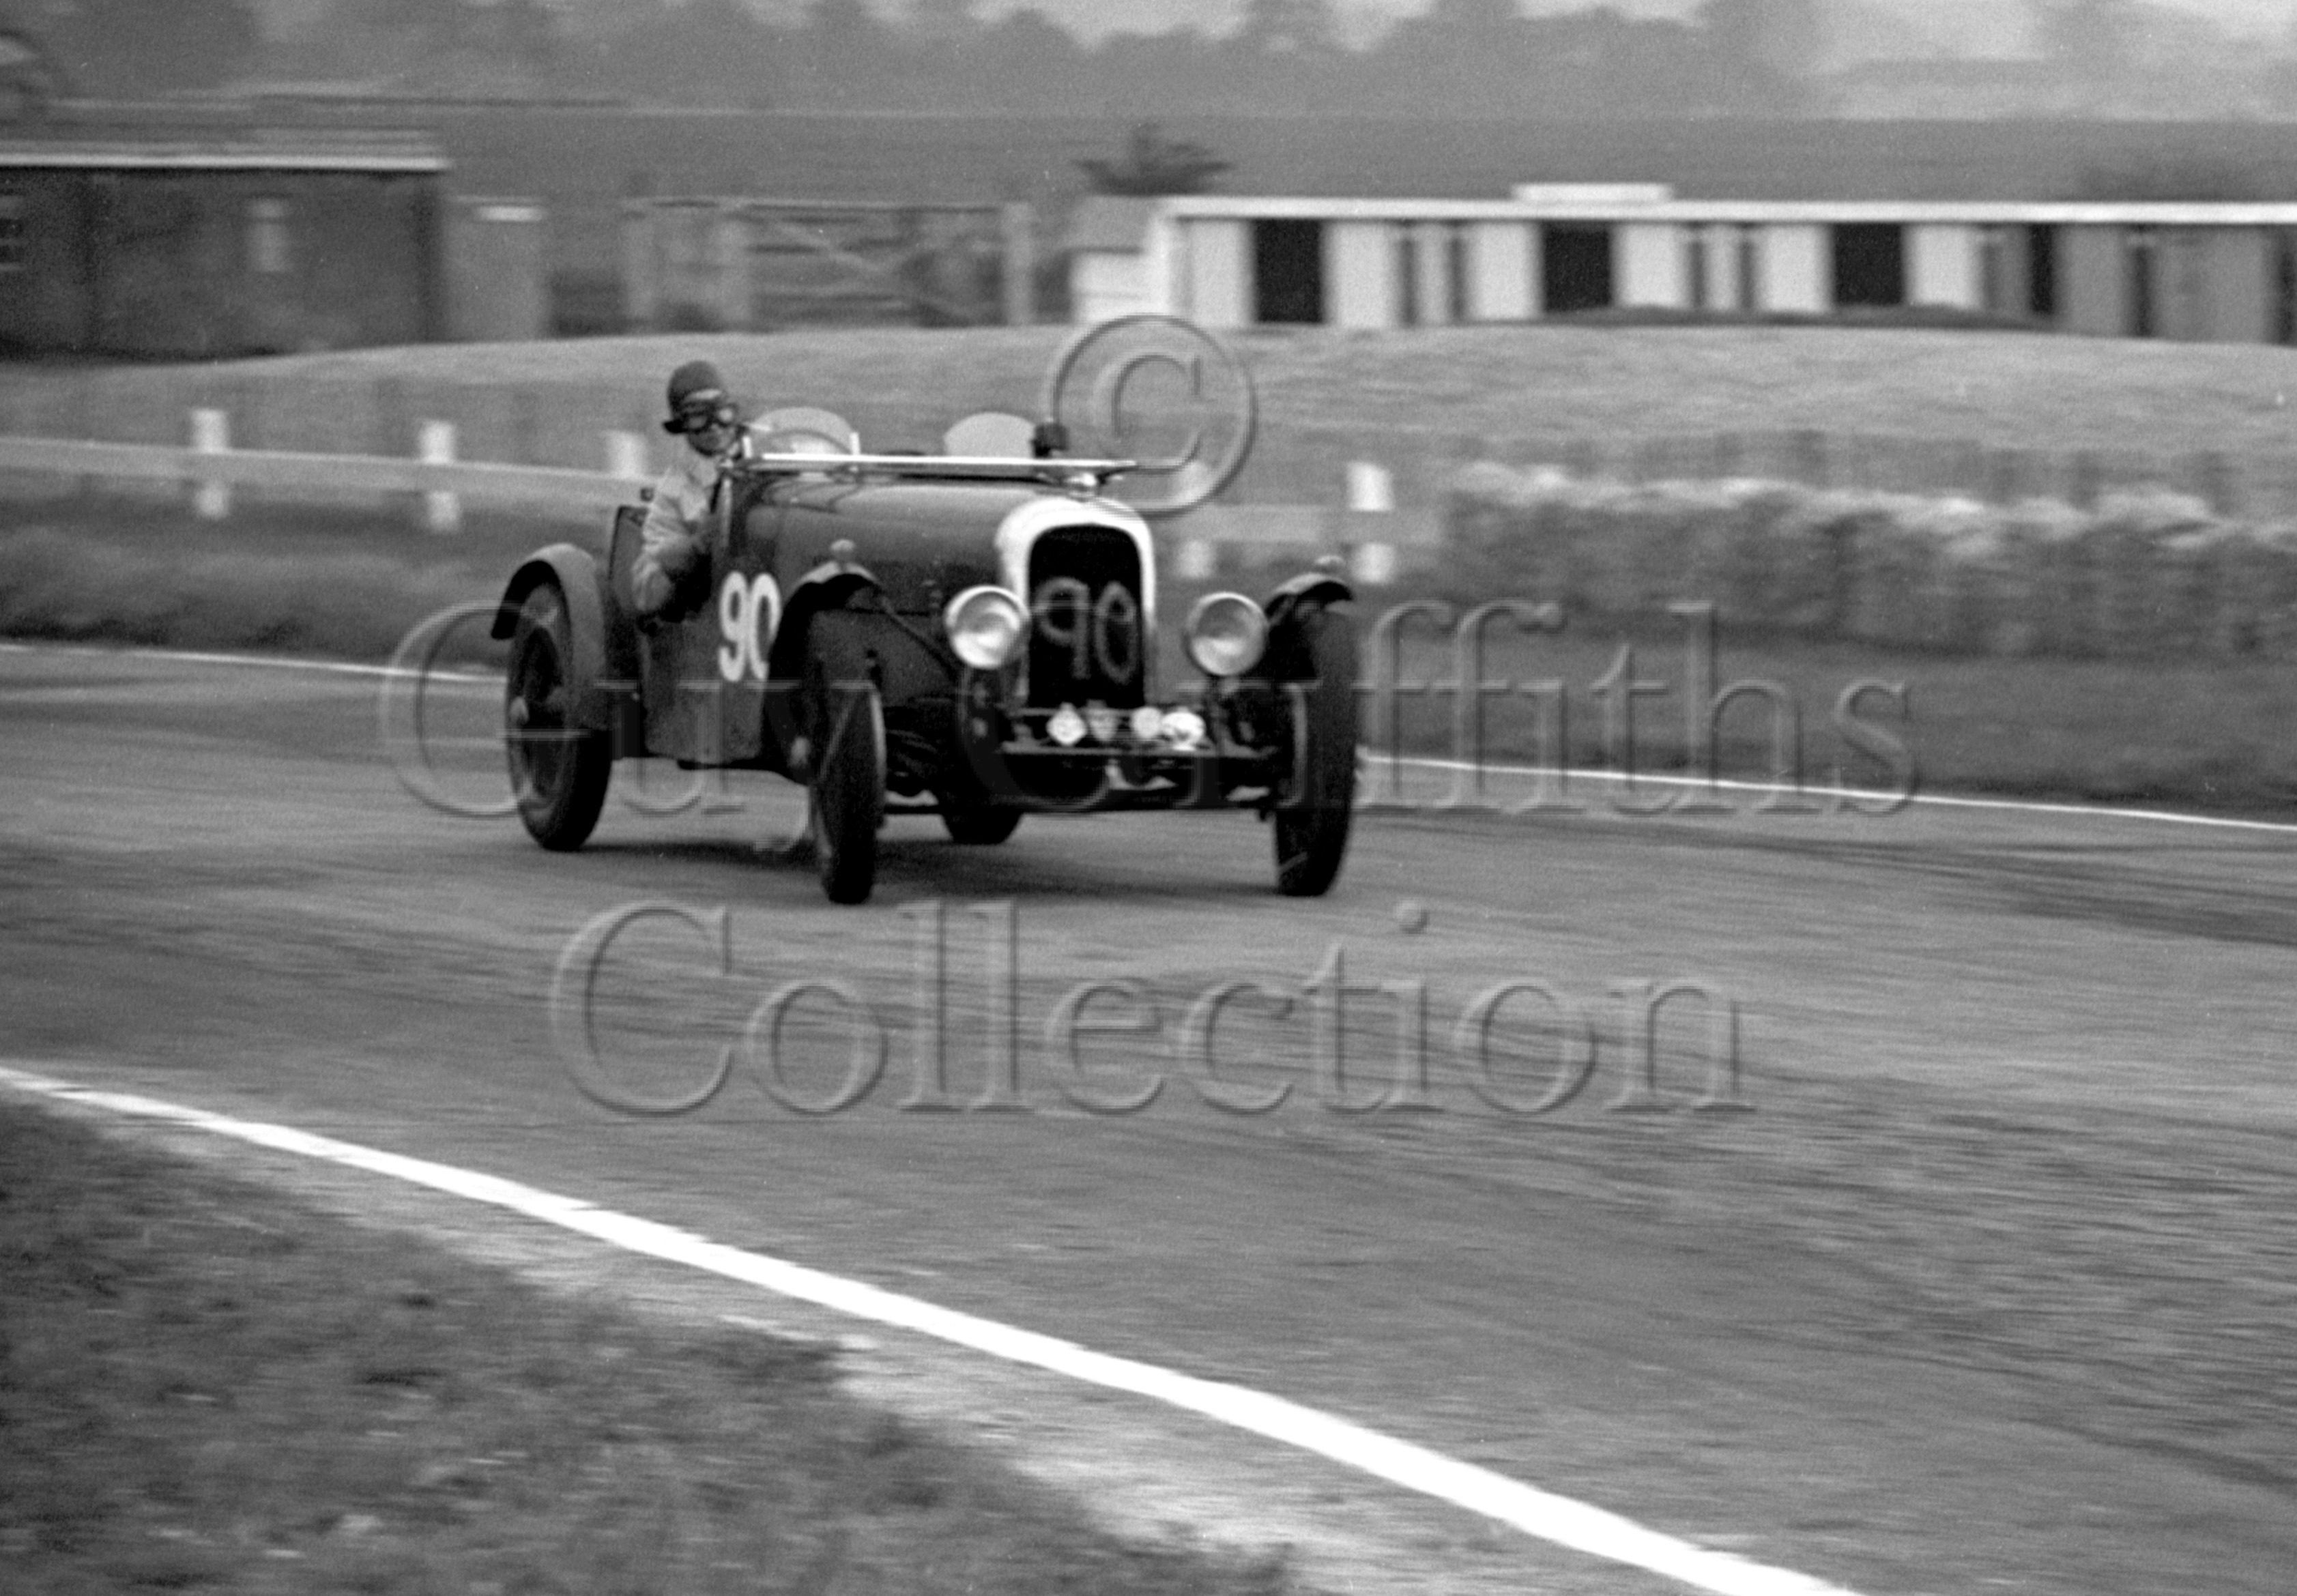 29-282–M-Harman–Rapier–Goodwood–06-05-1950.jpg - The Guy Griffiths Collection